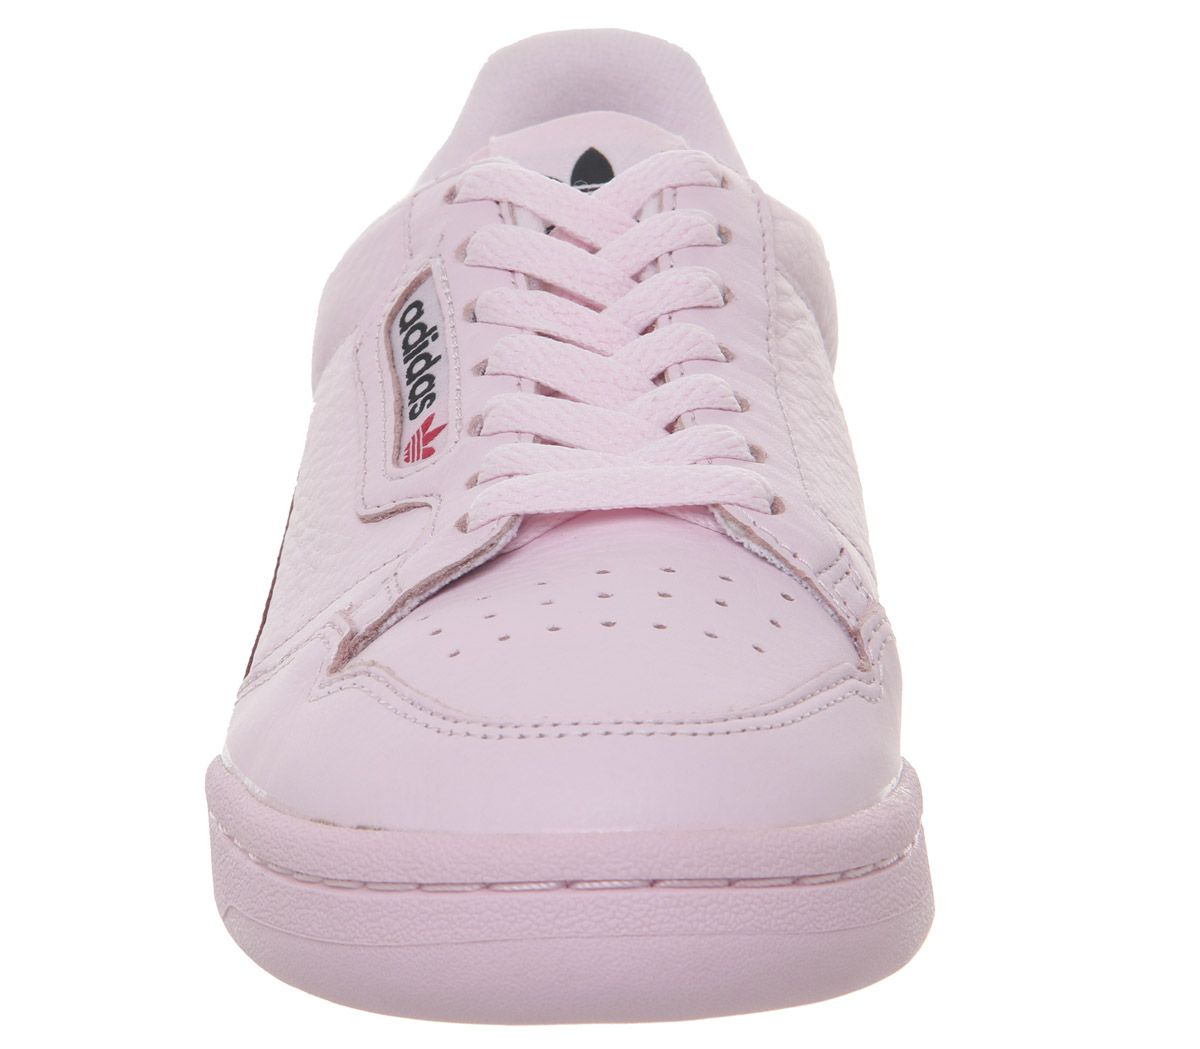 Details about Adidas Continental 80S Trainers Clear Pink Scarlet Collegiate Navy Trainers Shoe